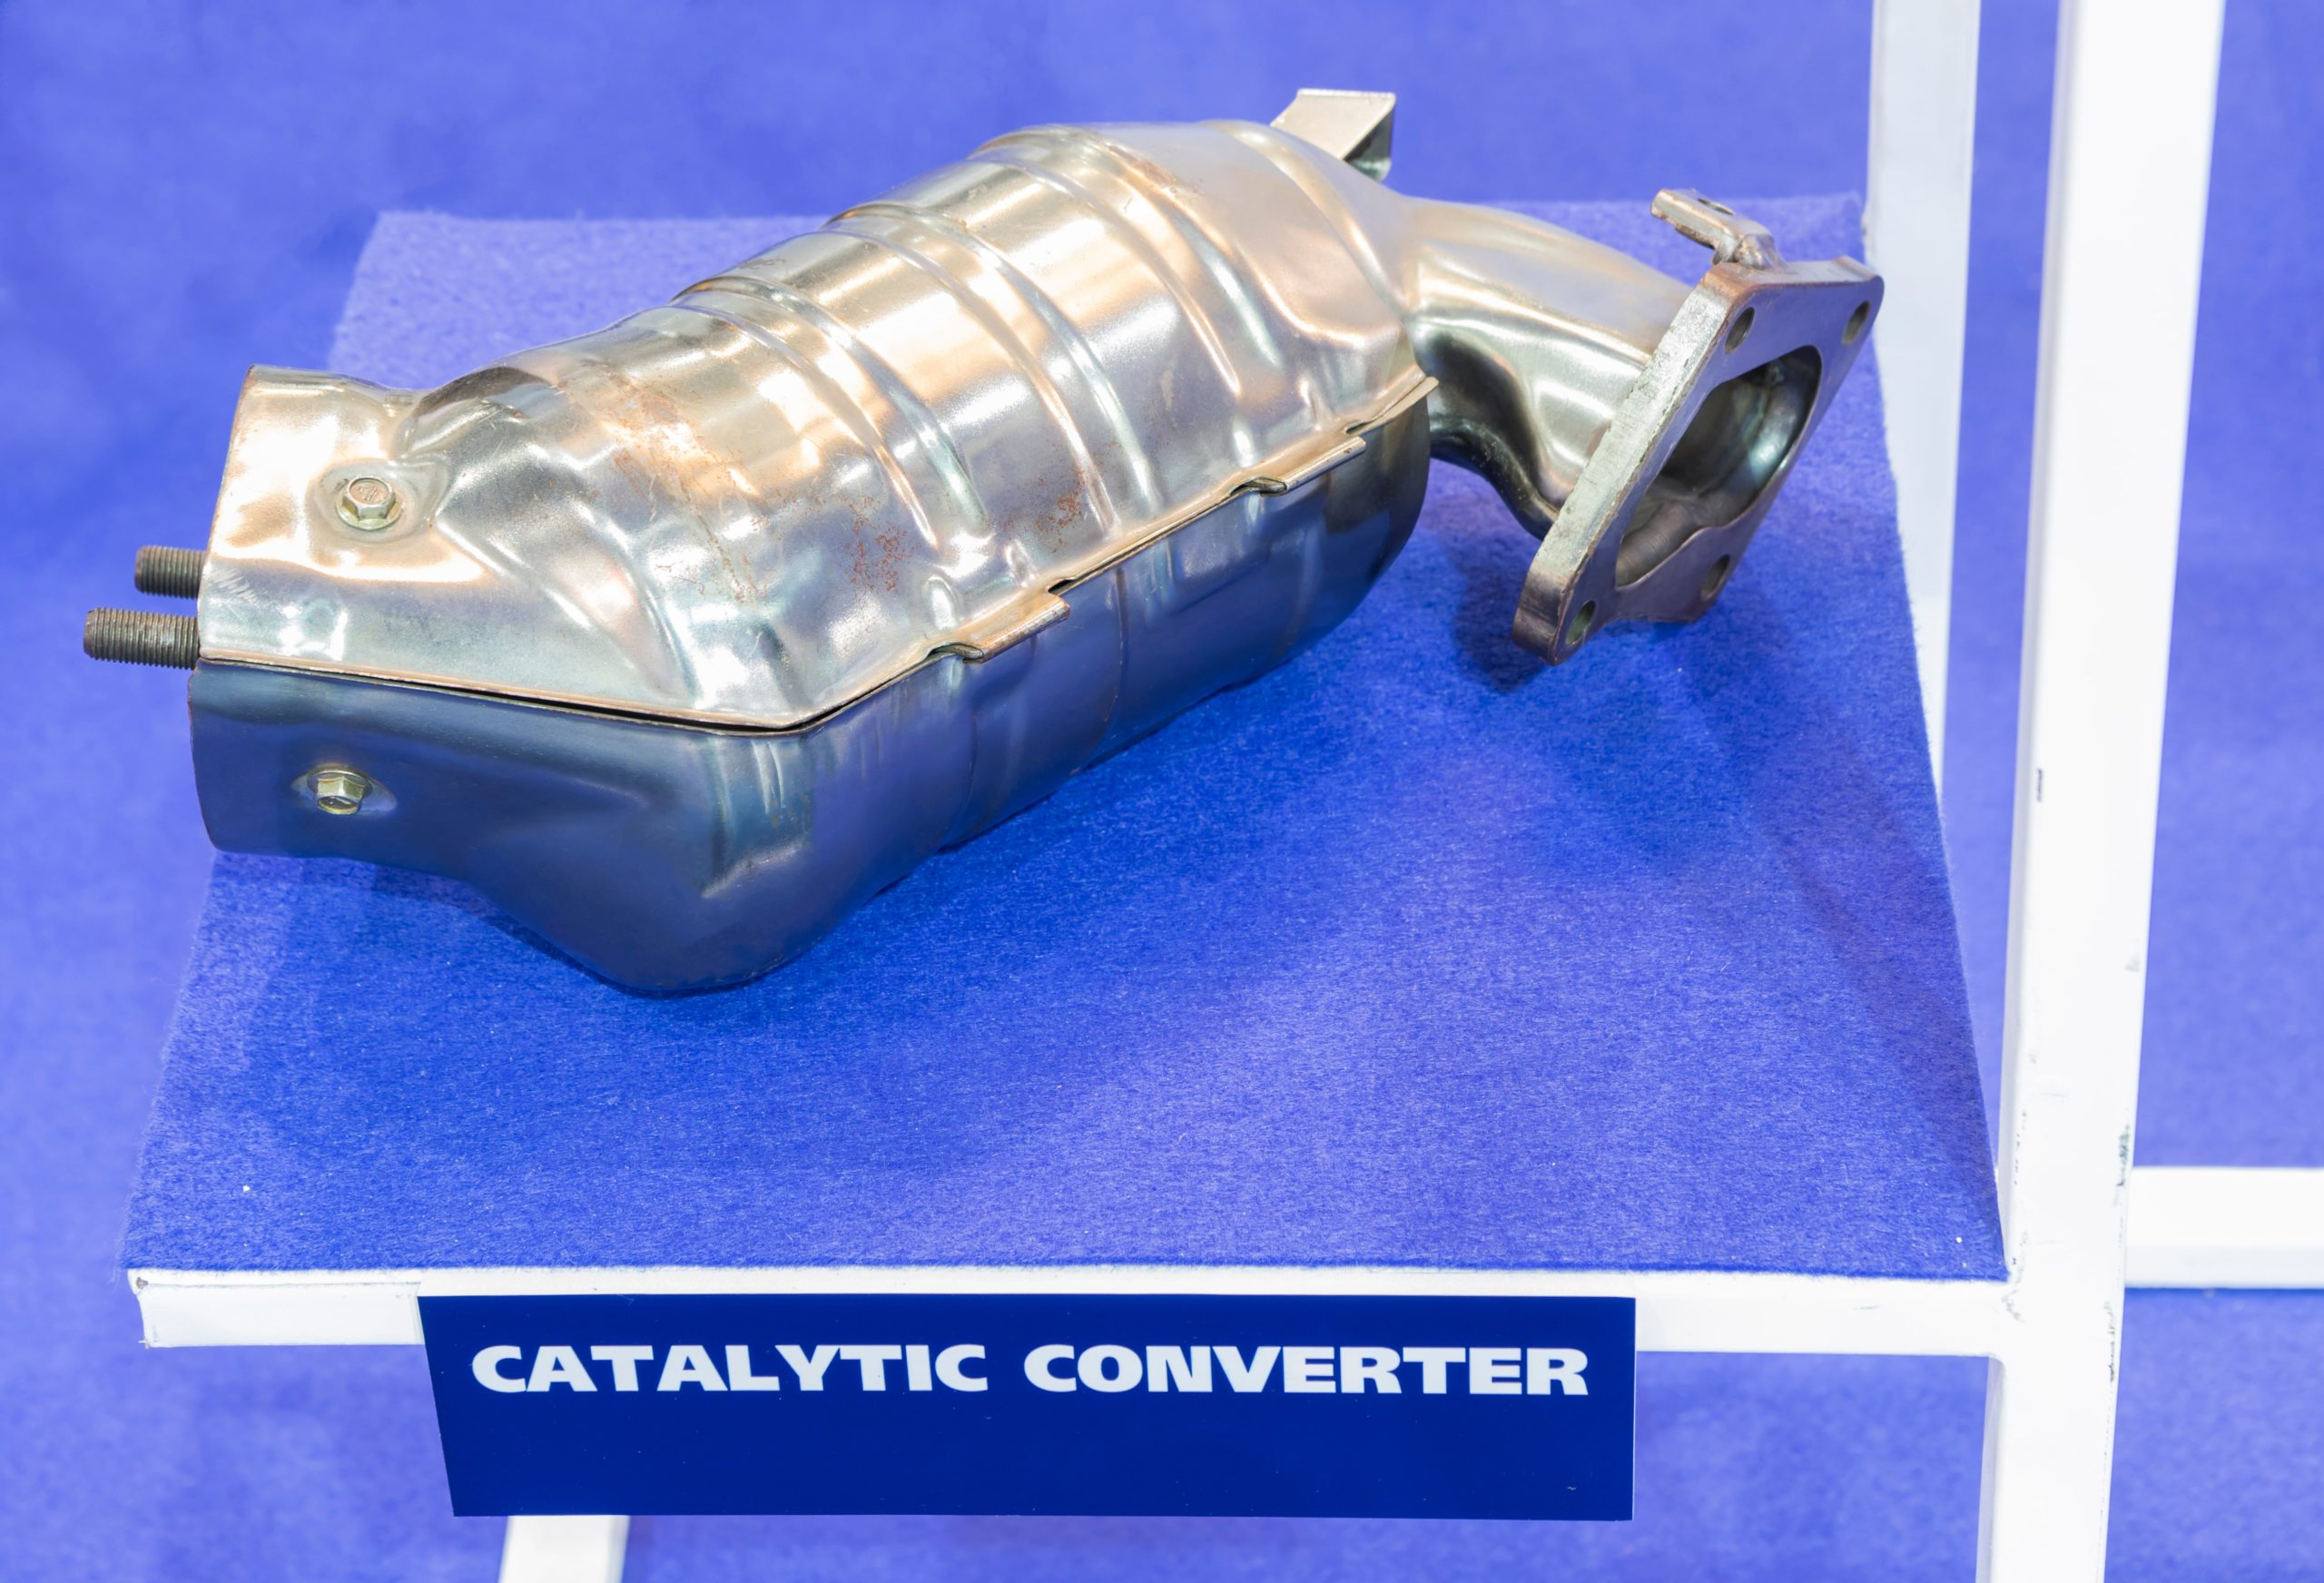 A catalytic converter before installation